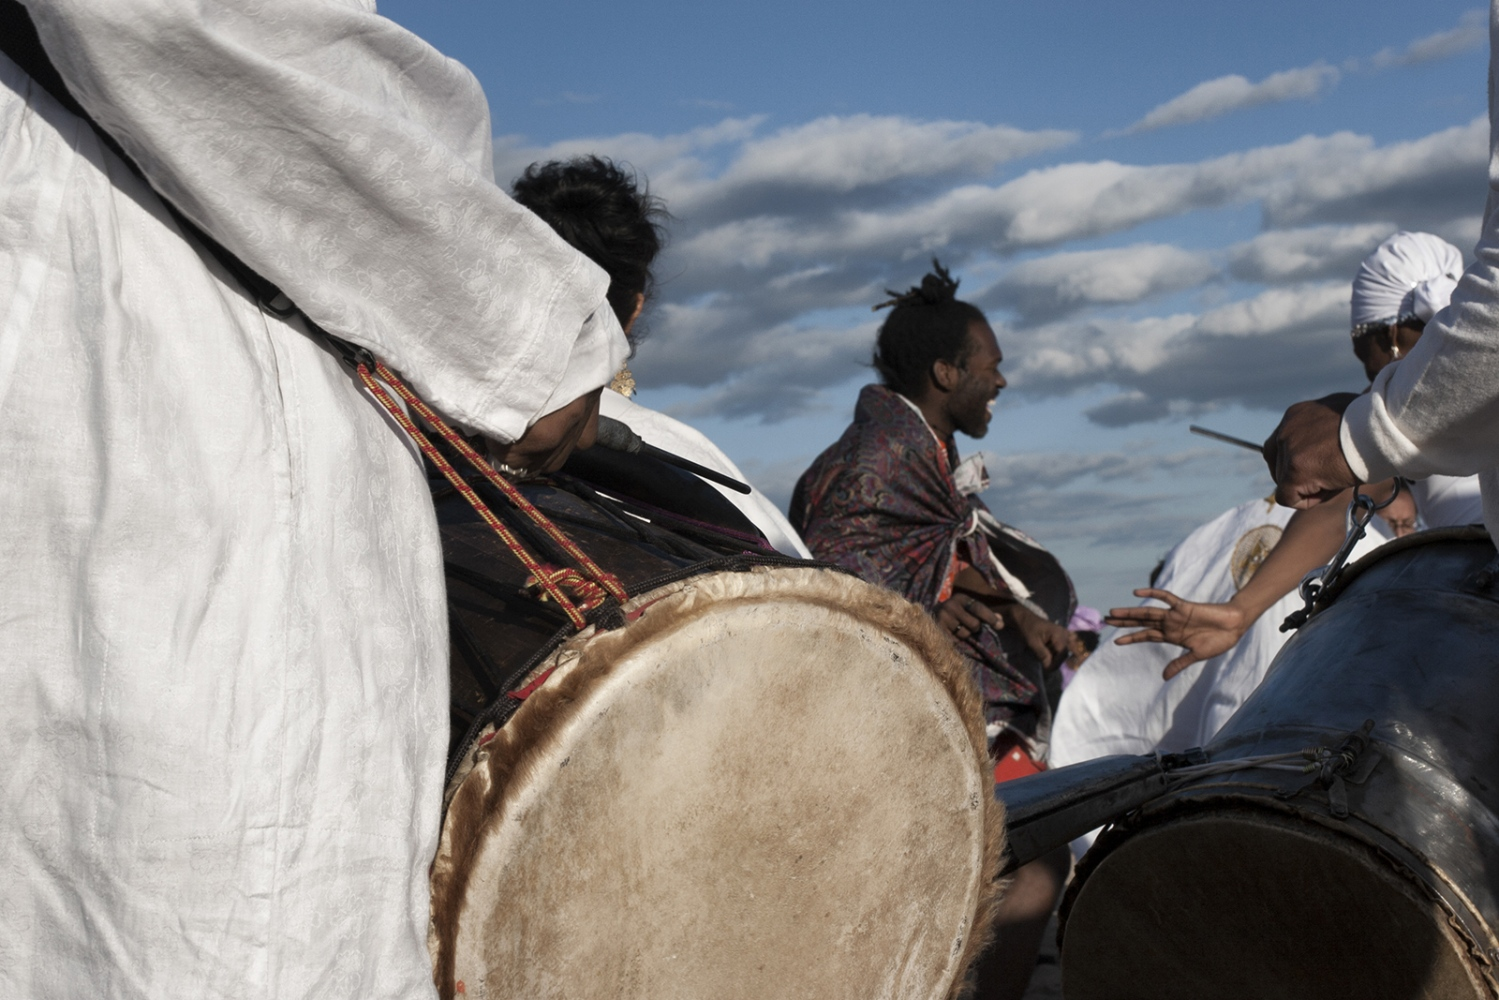 Art and Documentary Photography - Loading 02-michael-websterIMG_0457.jpg